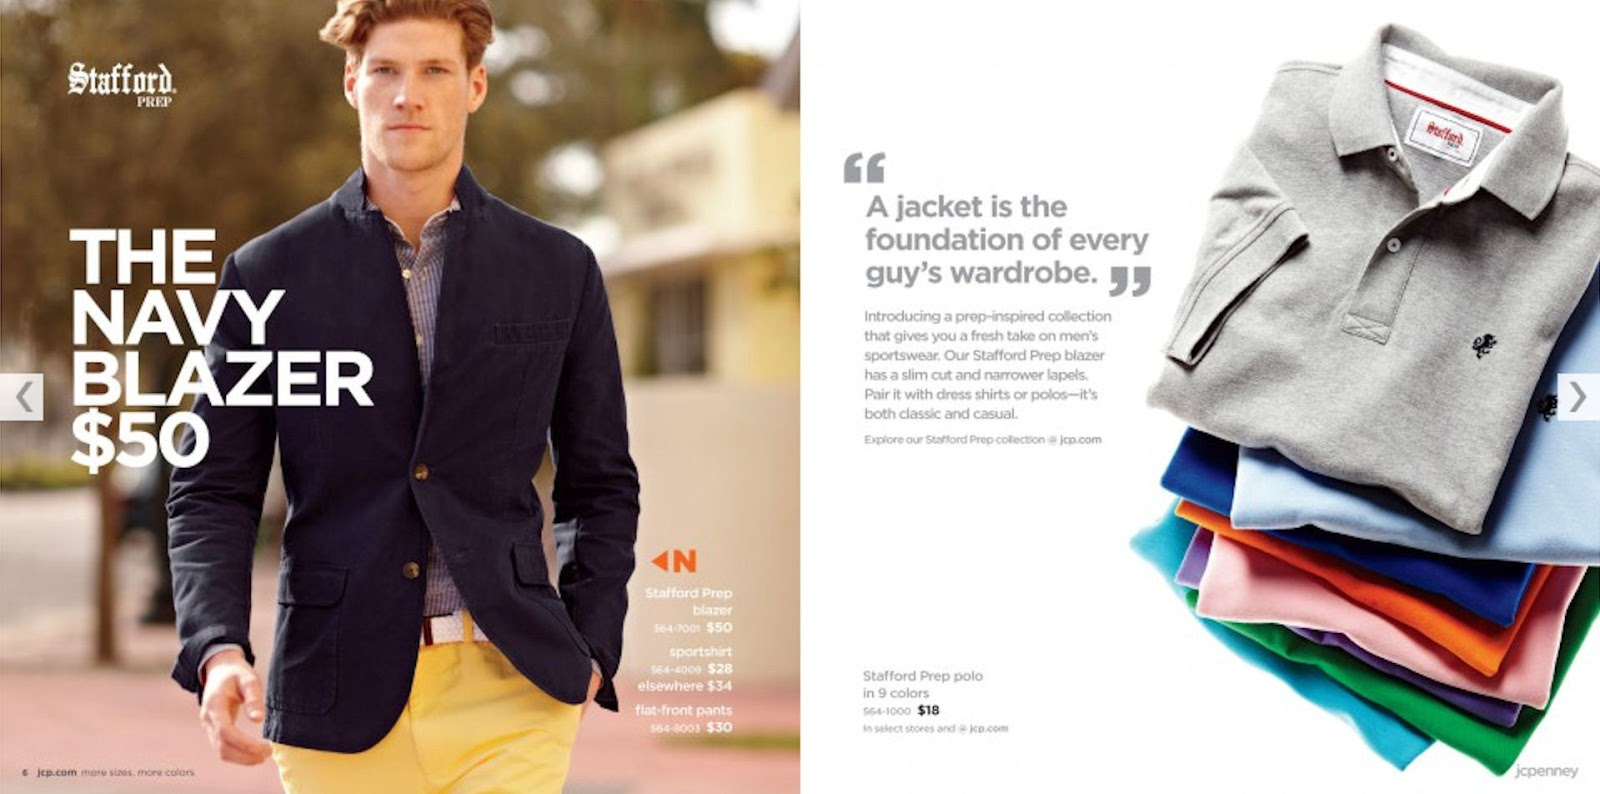 3edb1abfe89a Some of the images from the JCPenney Nick Wooster Catalogue are a good  indication of key items to build a good foundation for any man s wardrobe.